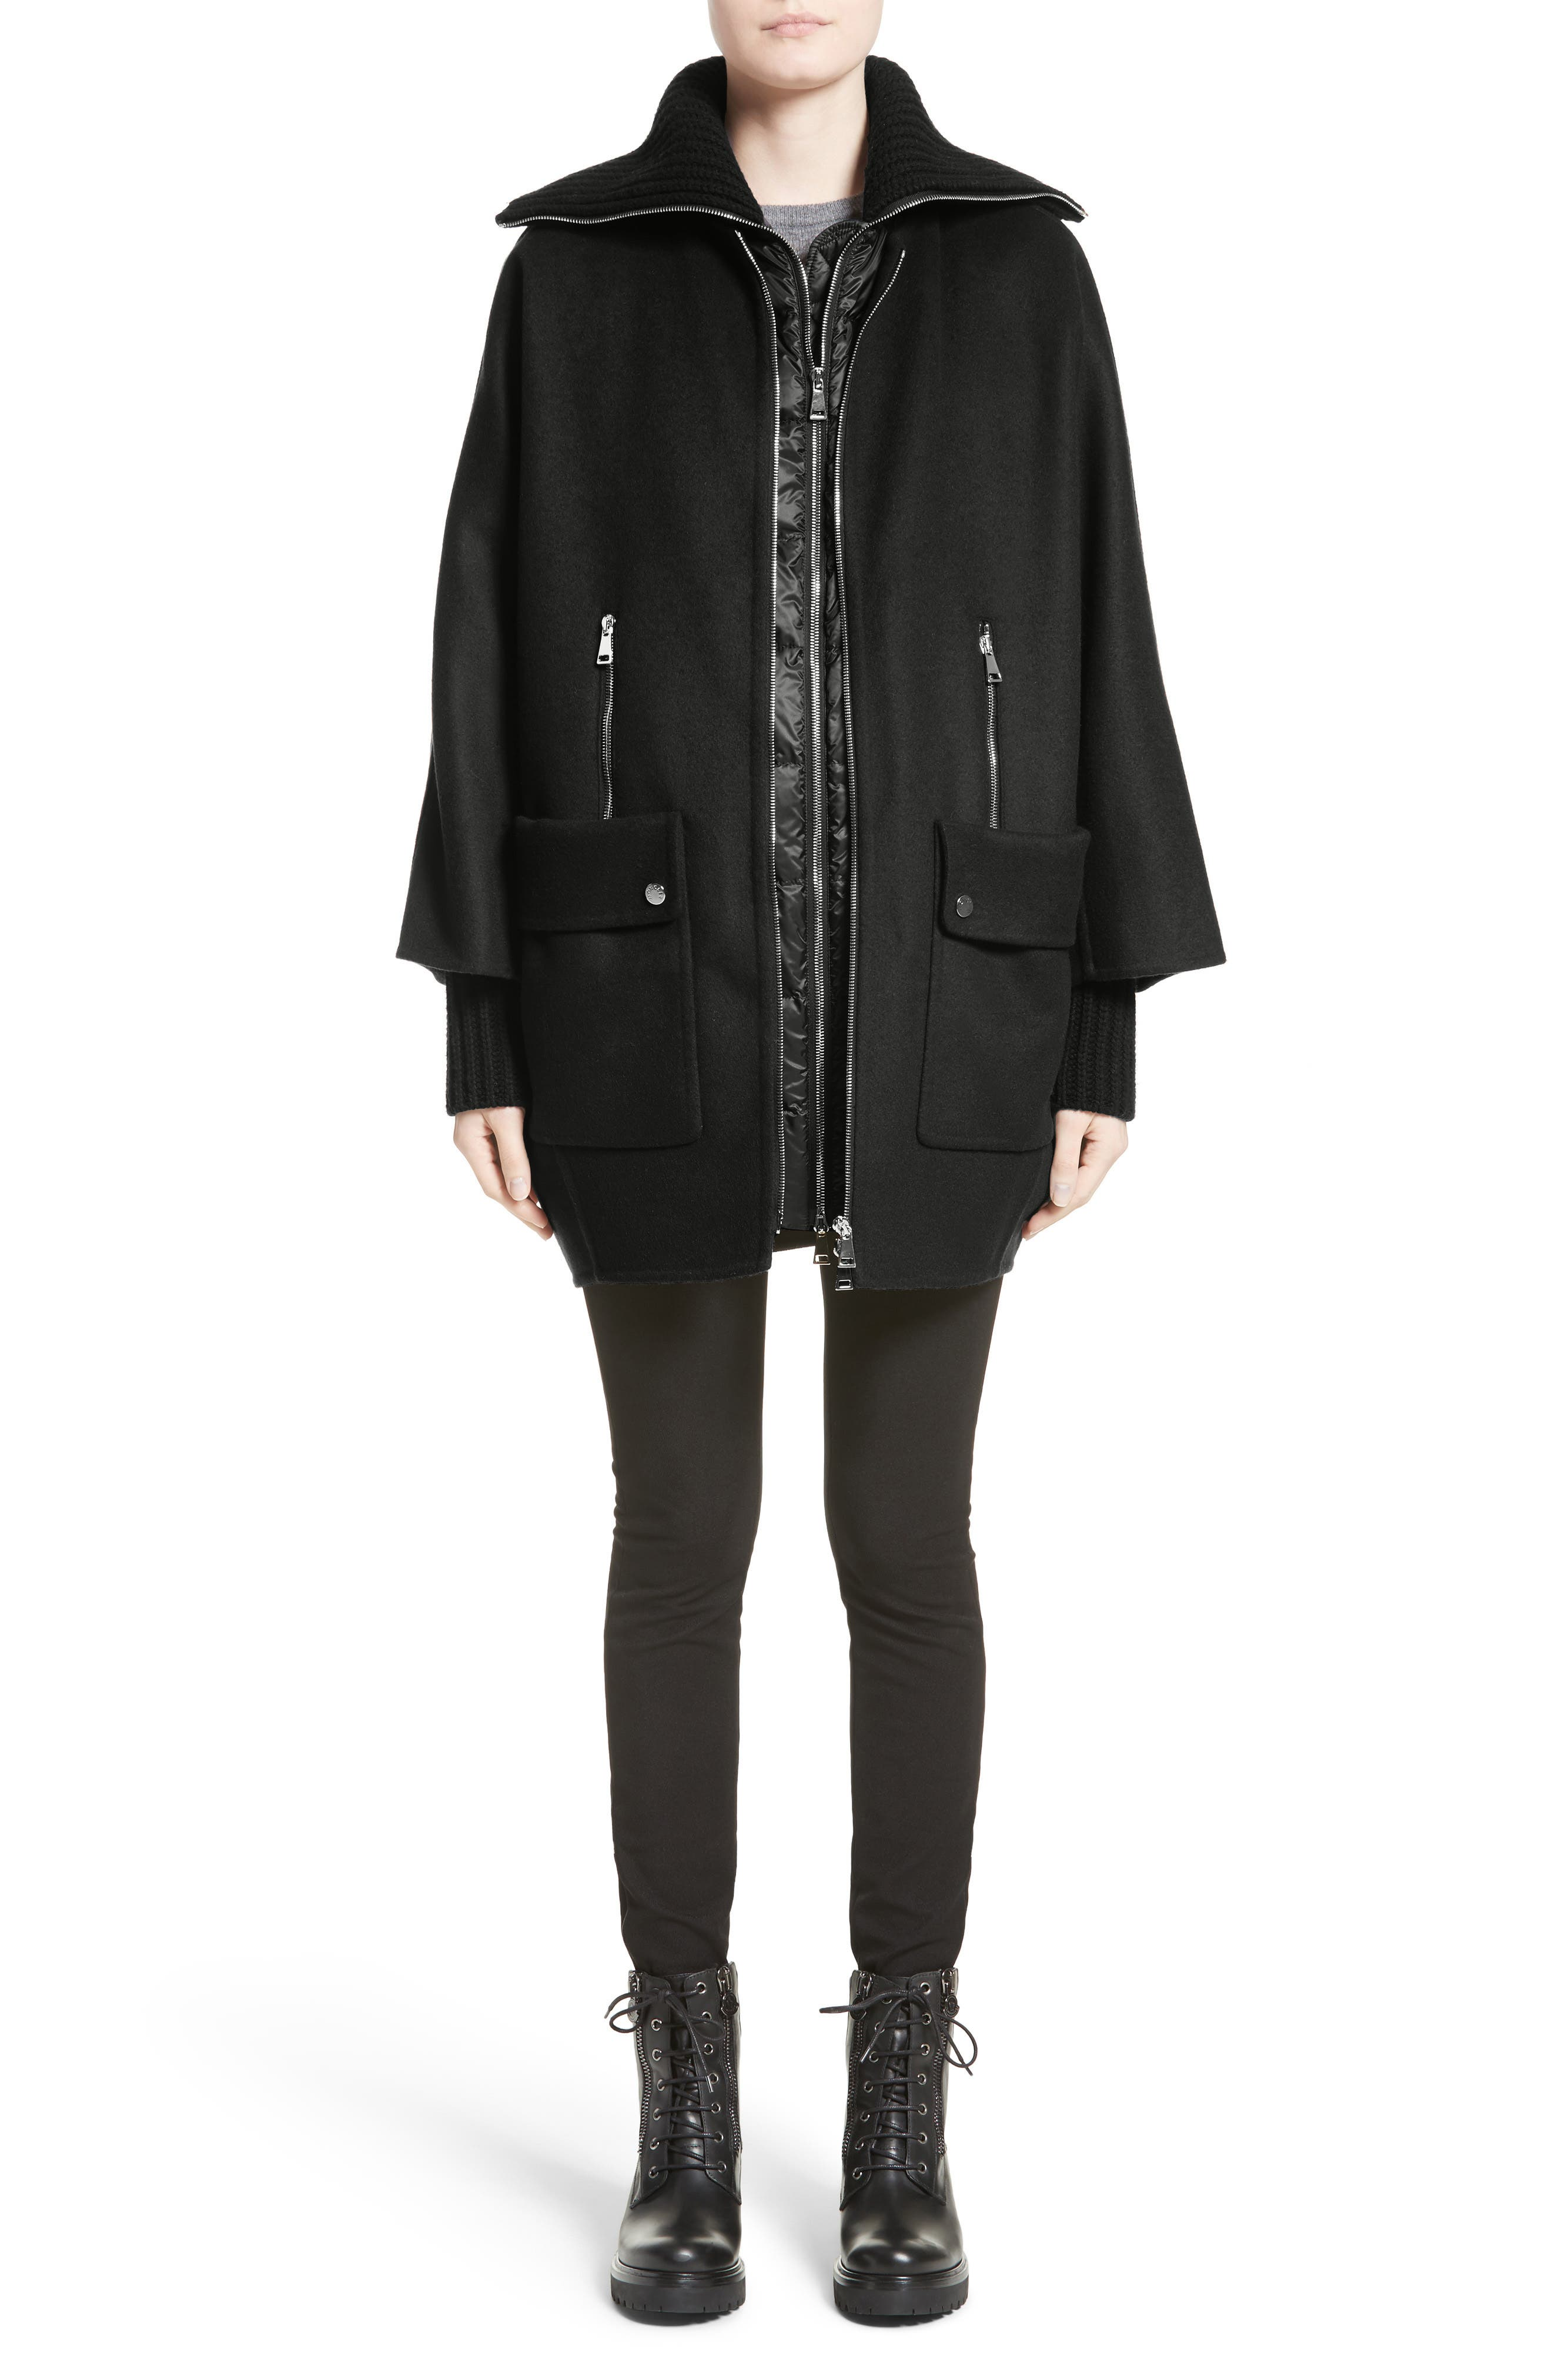 Acanthus Wool & Cashmere Coat with Removable Down Puffer Layer,                             Alternate thumbnail 7, color,                             BLACK